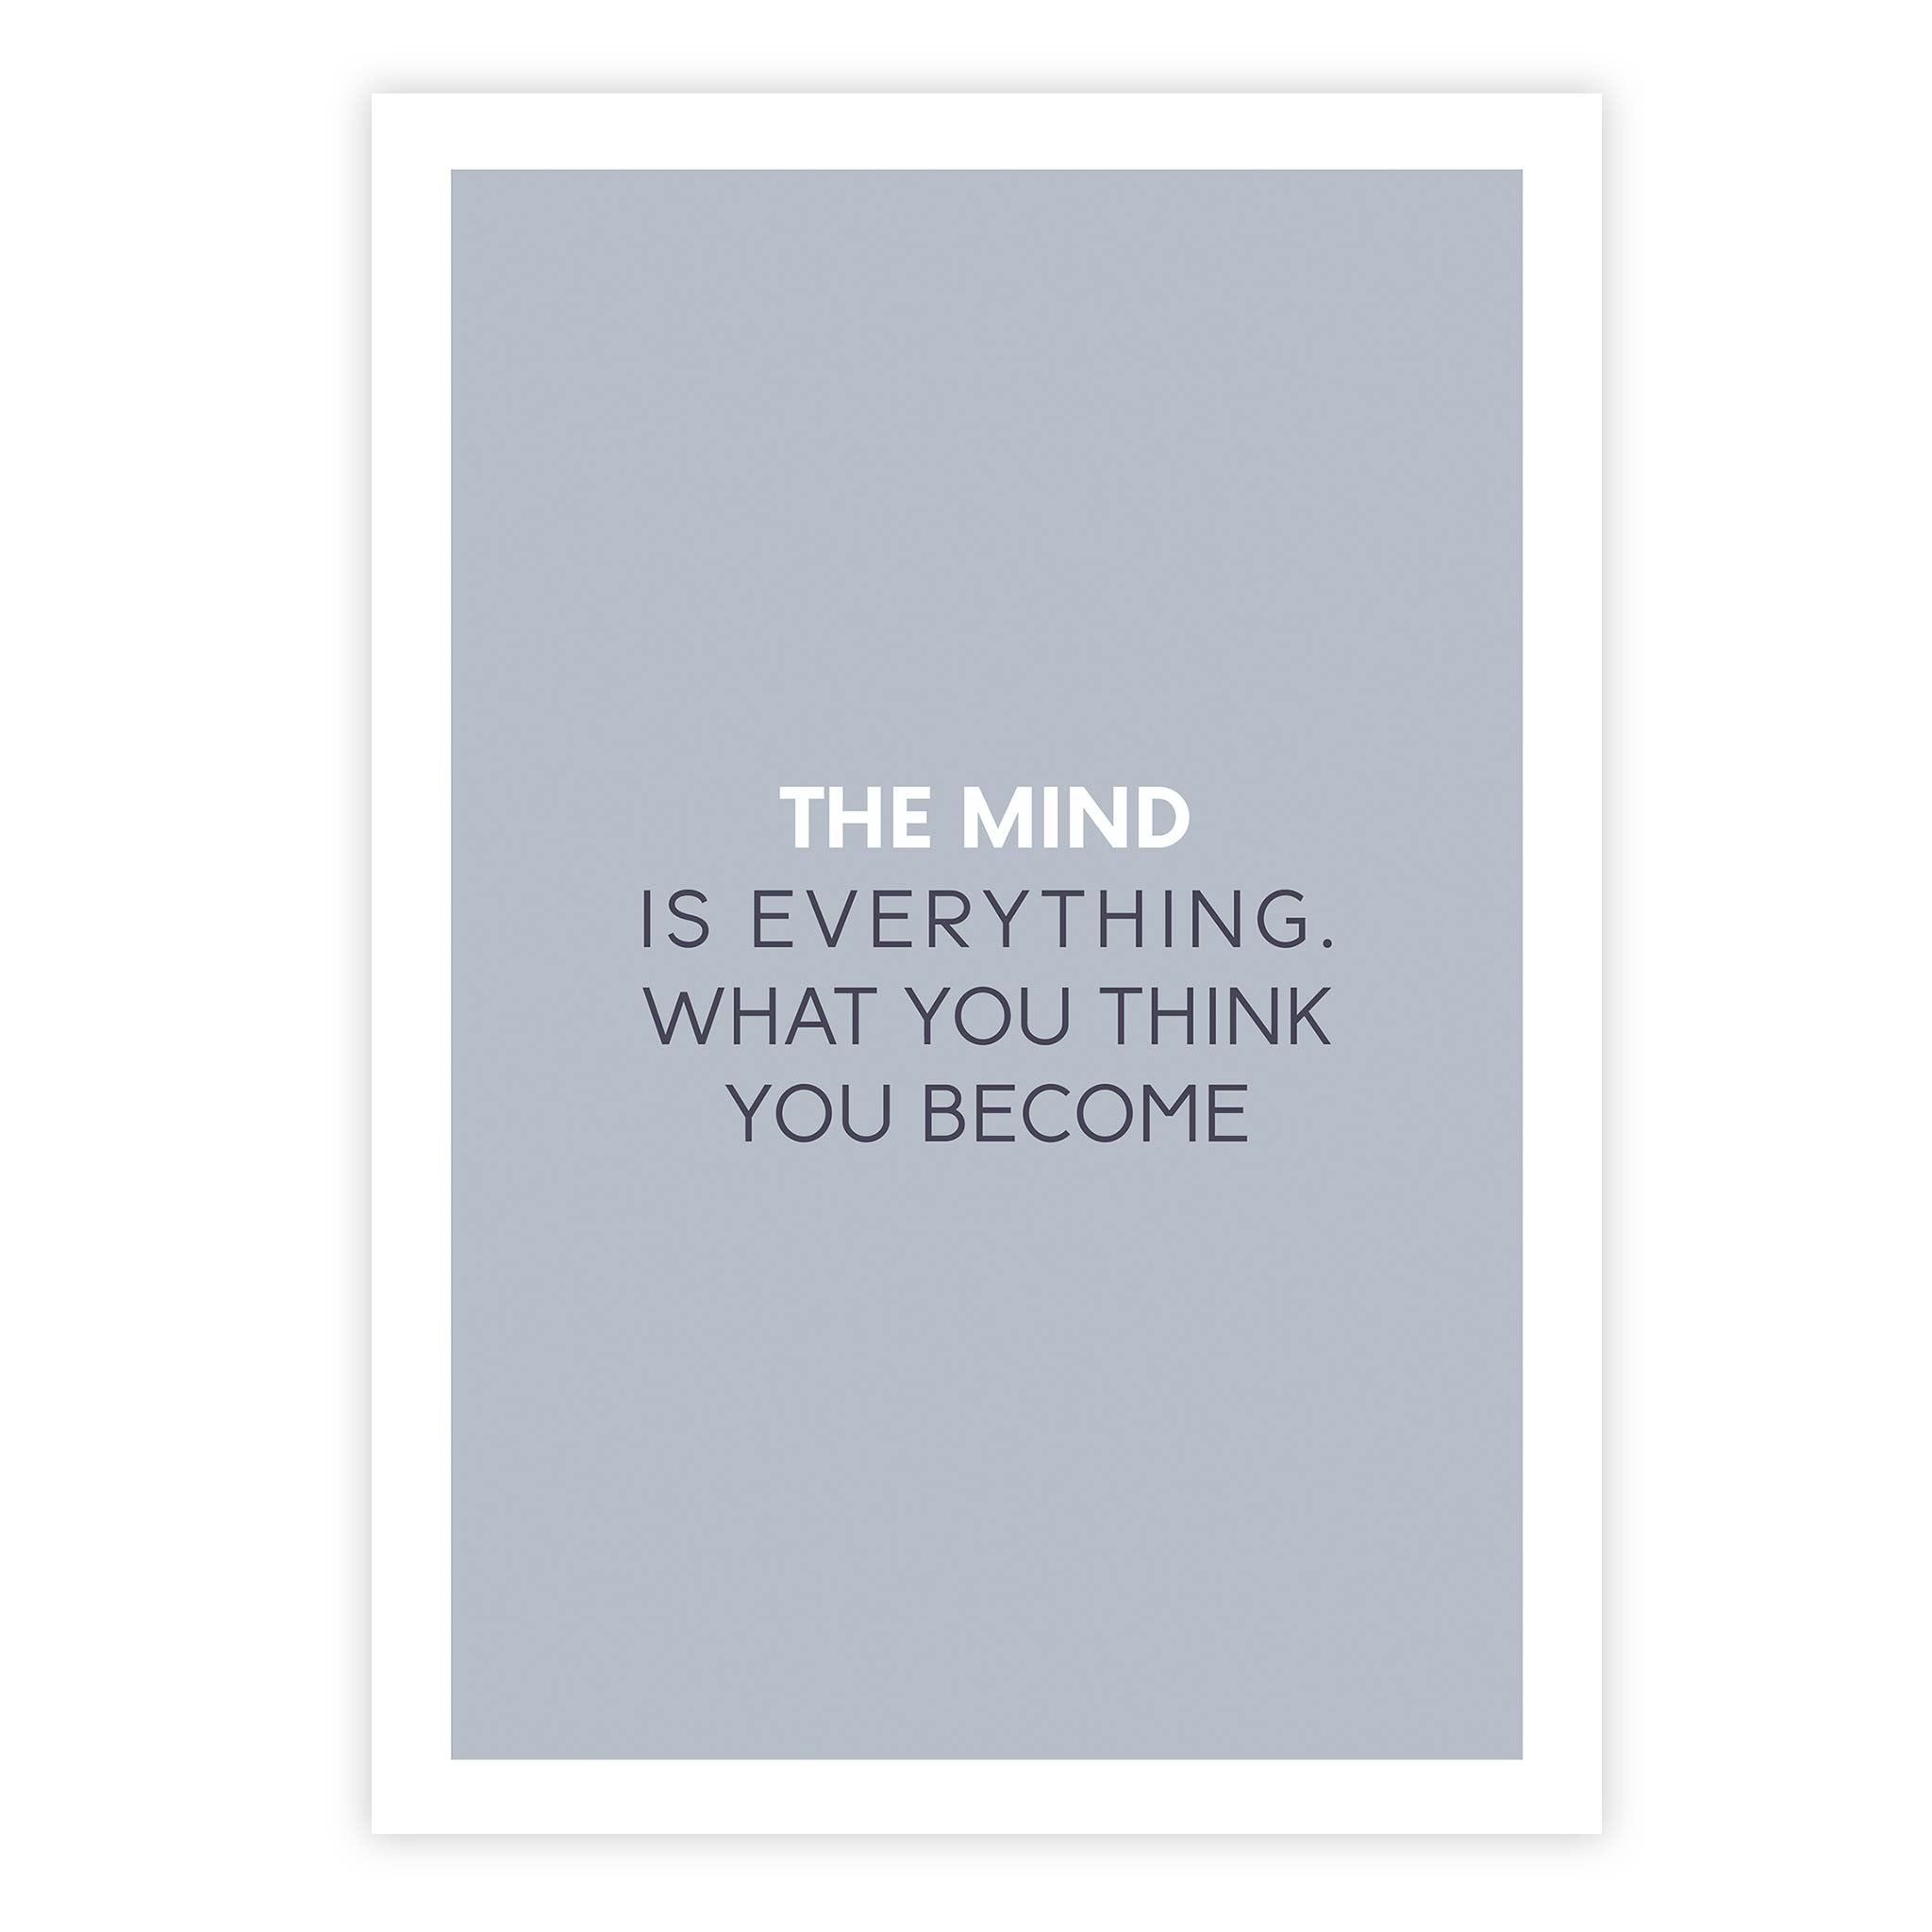 The mind is everything. What you think you become